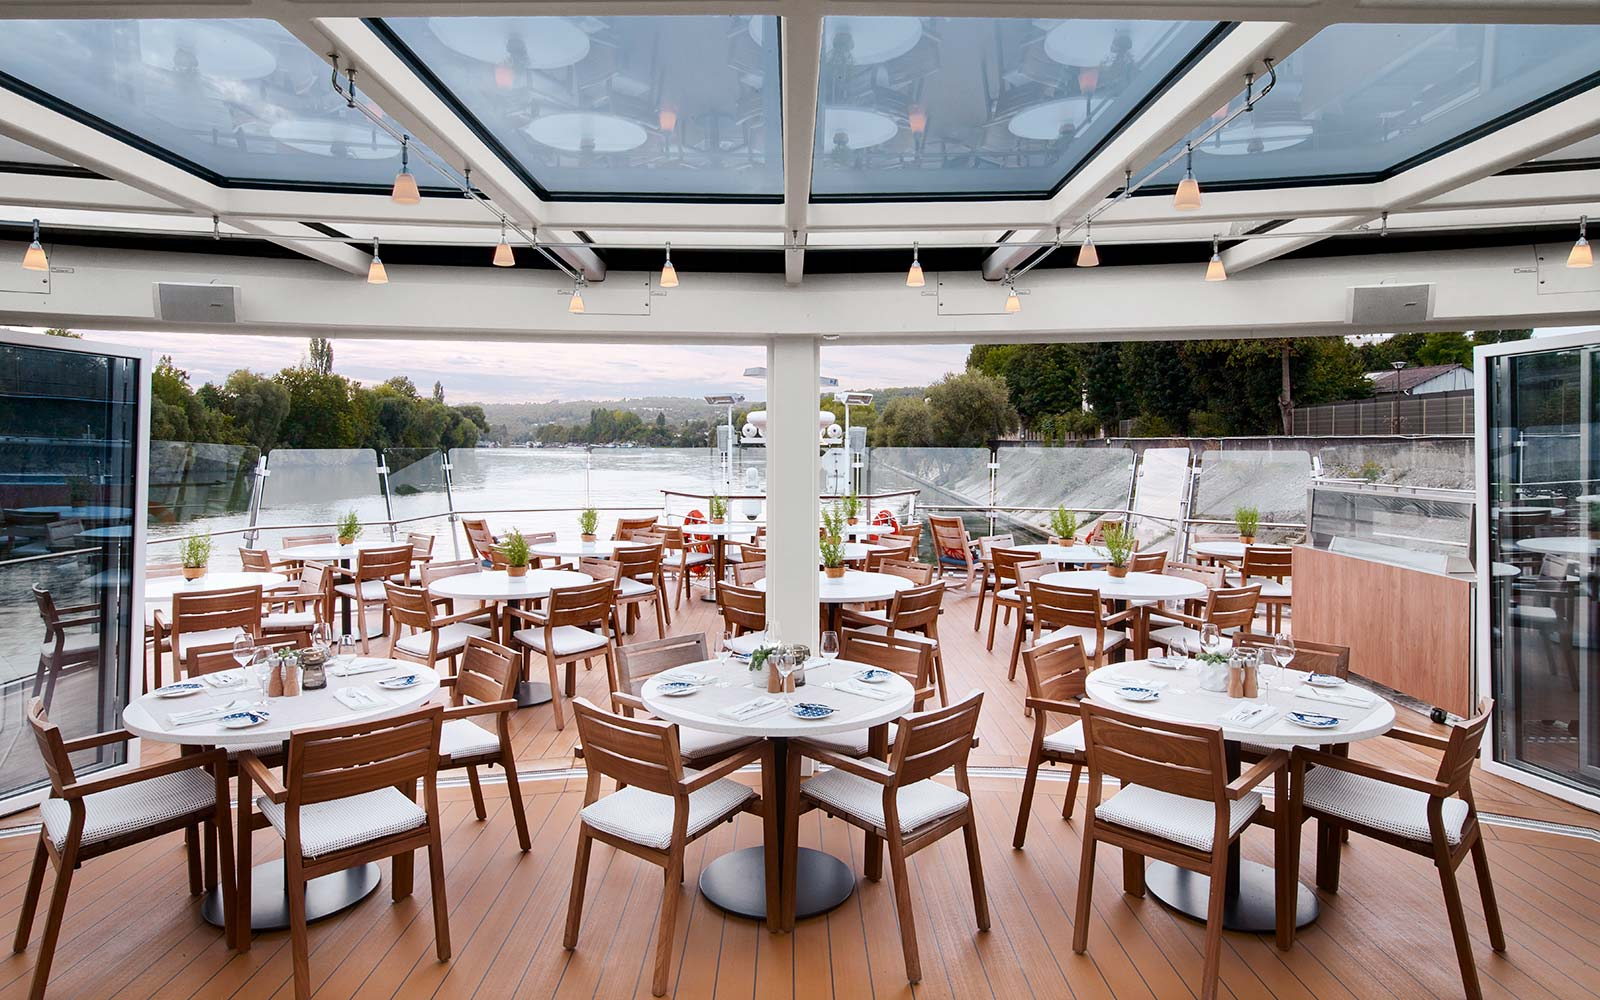 Viking River Cruise Longship Hild Aquavit Terrace Dining